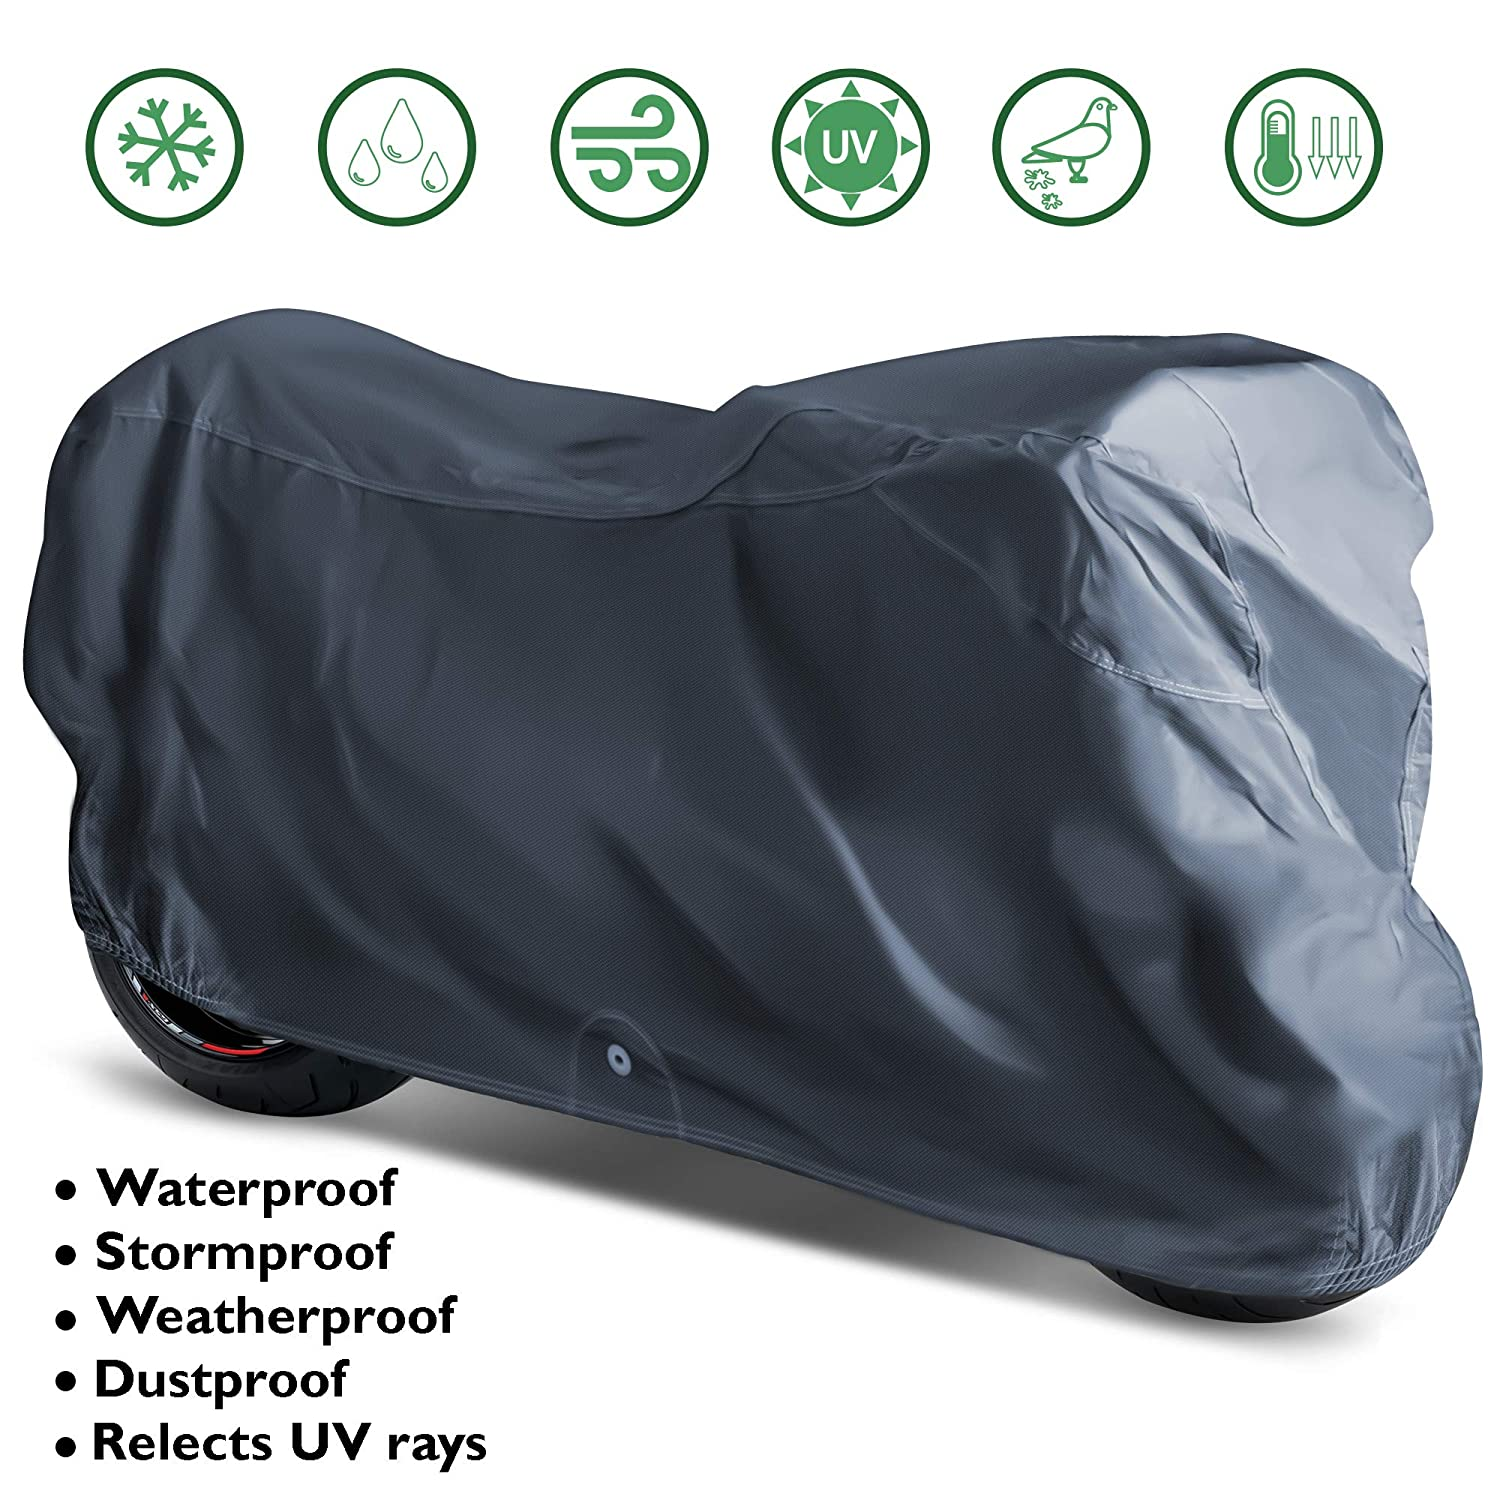 OxGord Executive Storm-Proof Motorcycle Cover - Water Resistant 7 Layers - Ready-Fit/Semi Custom - Fits up to 111 Inches